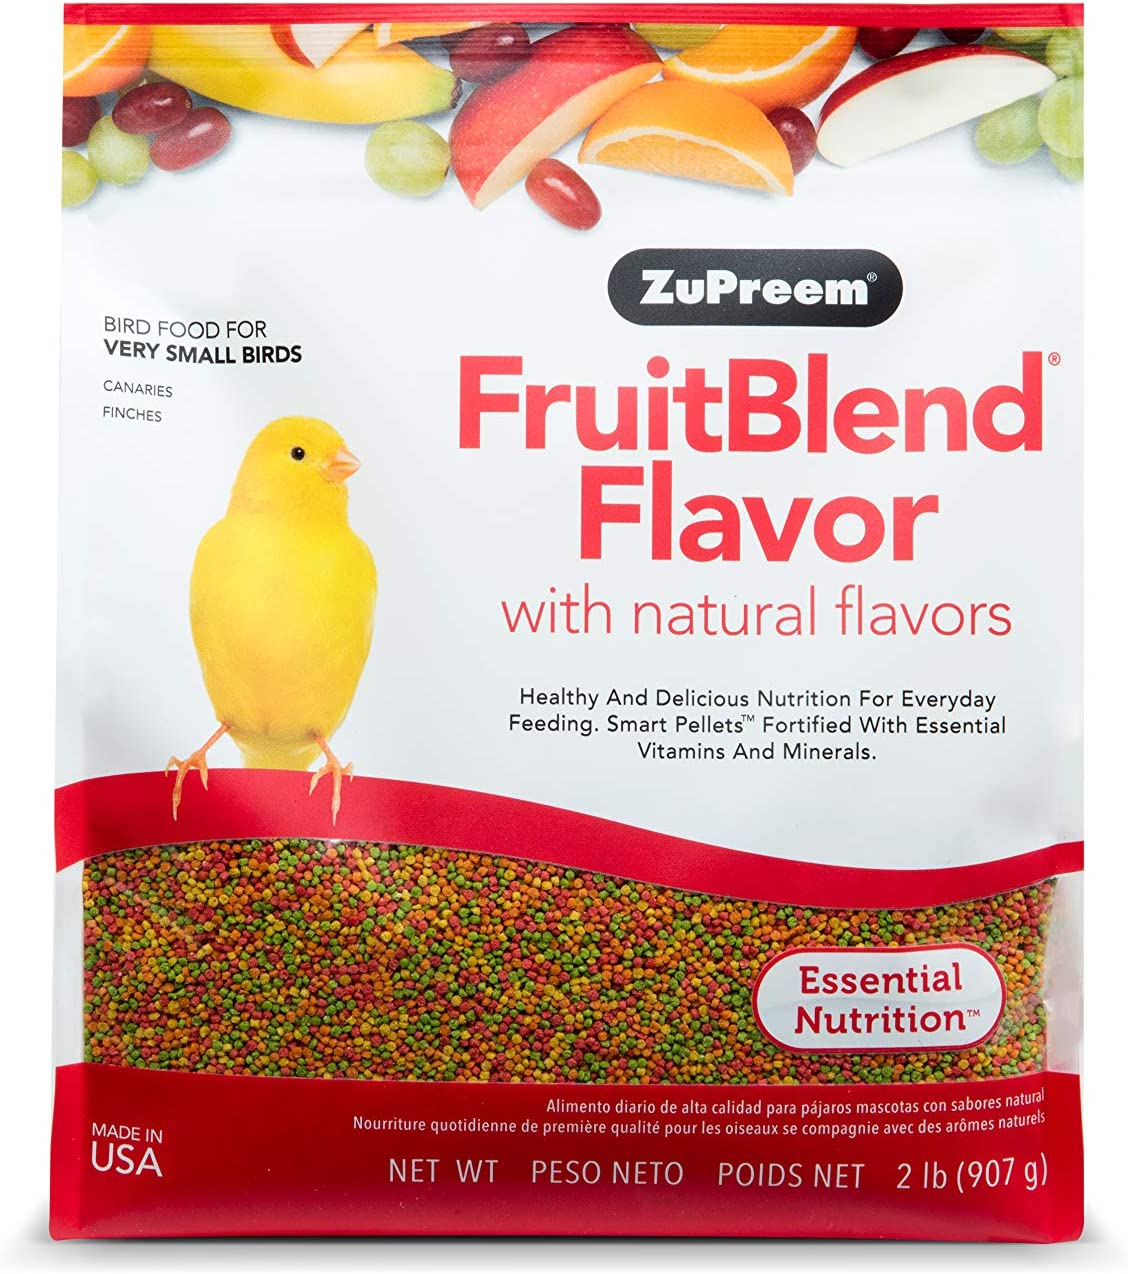 ZuPreem FruitBlend Flavor with Natural Flavors for Very Small Birds